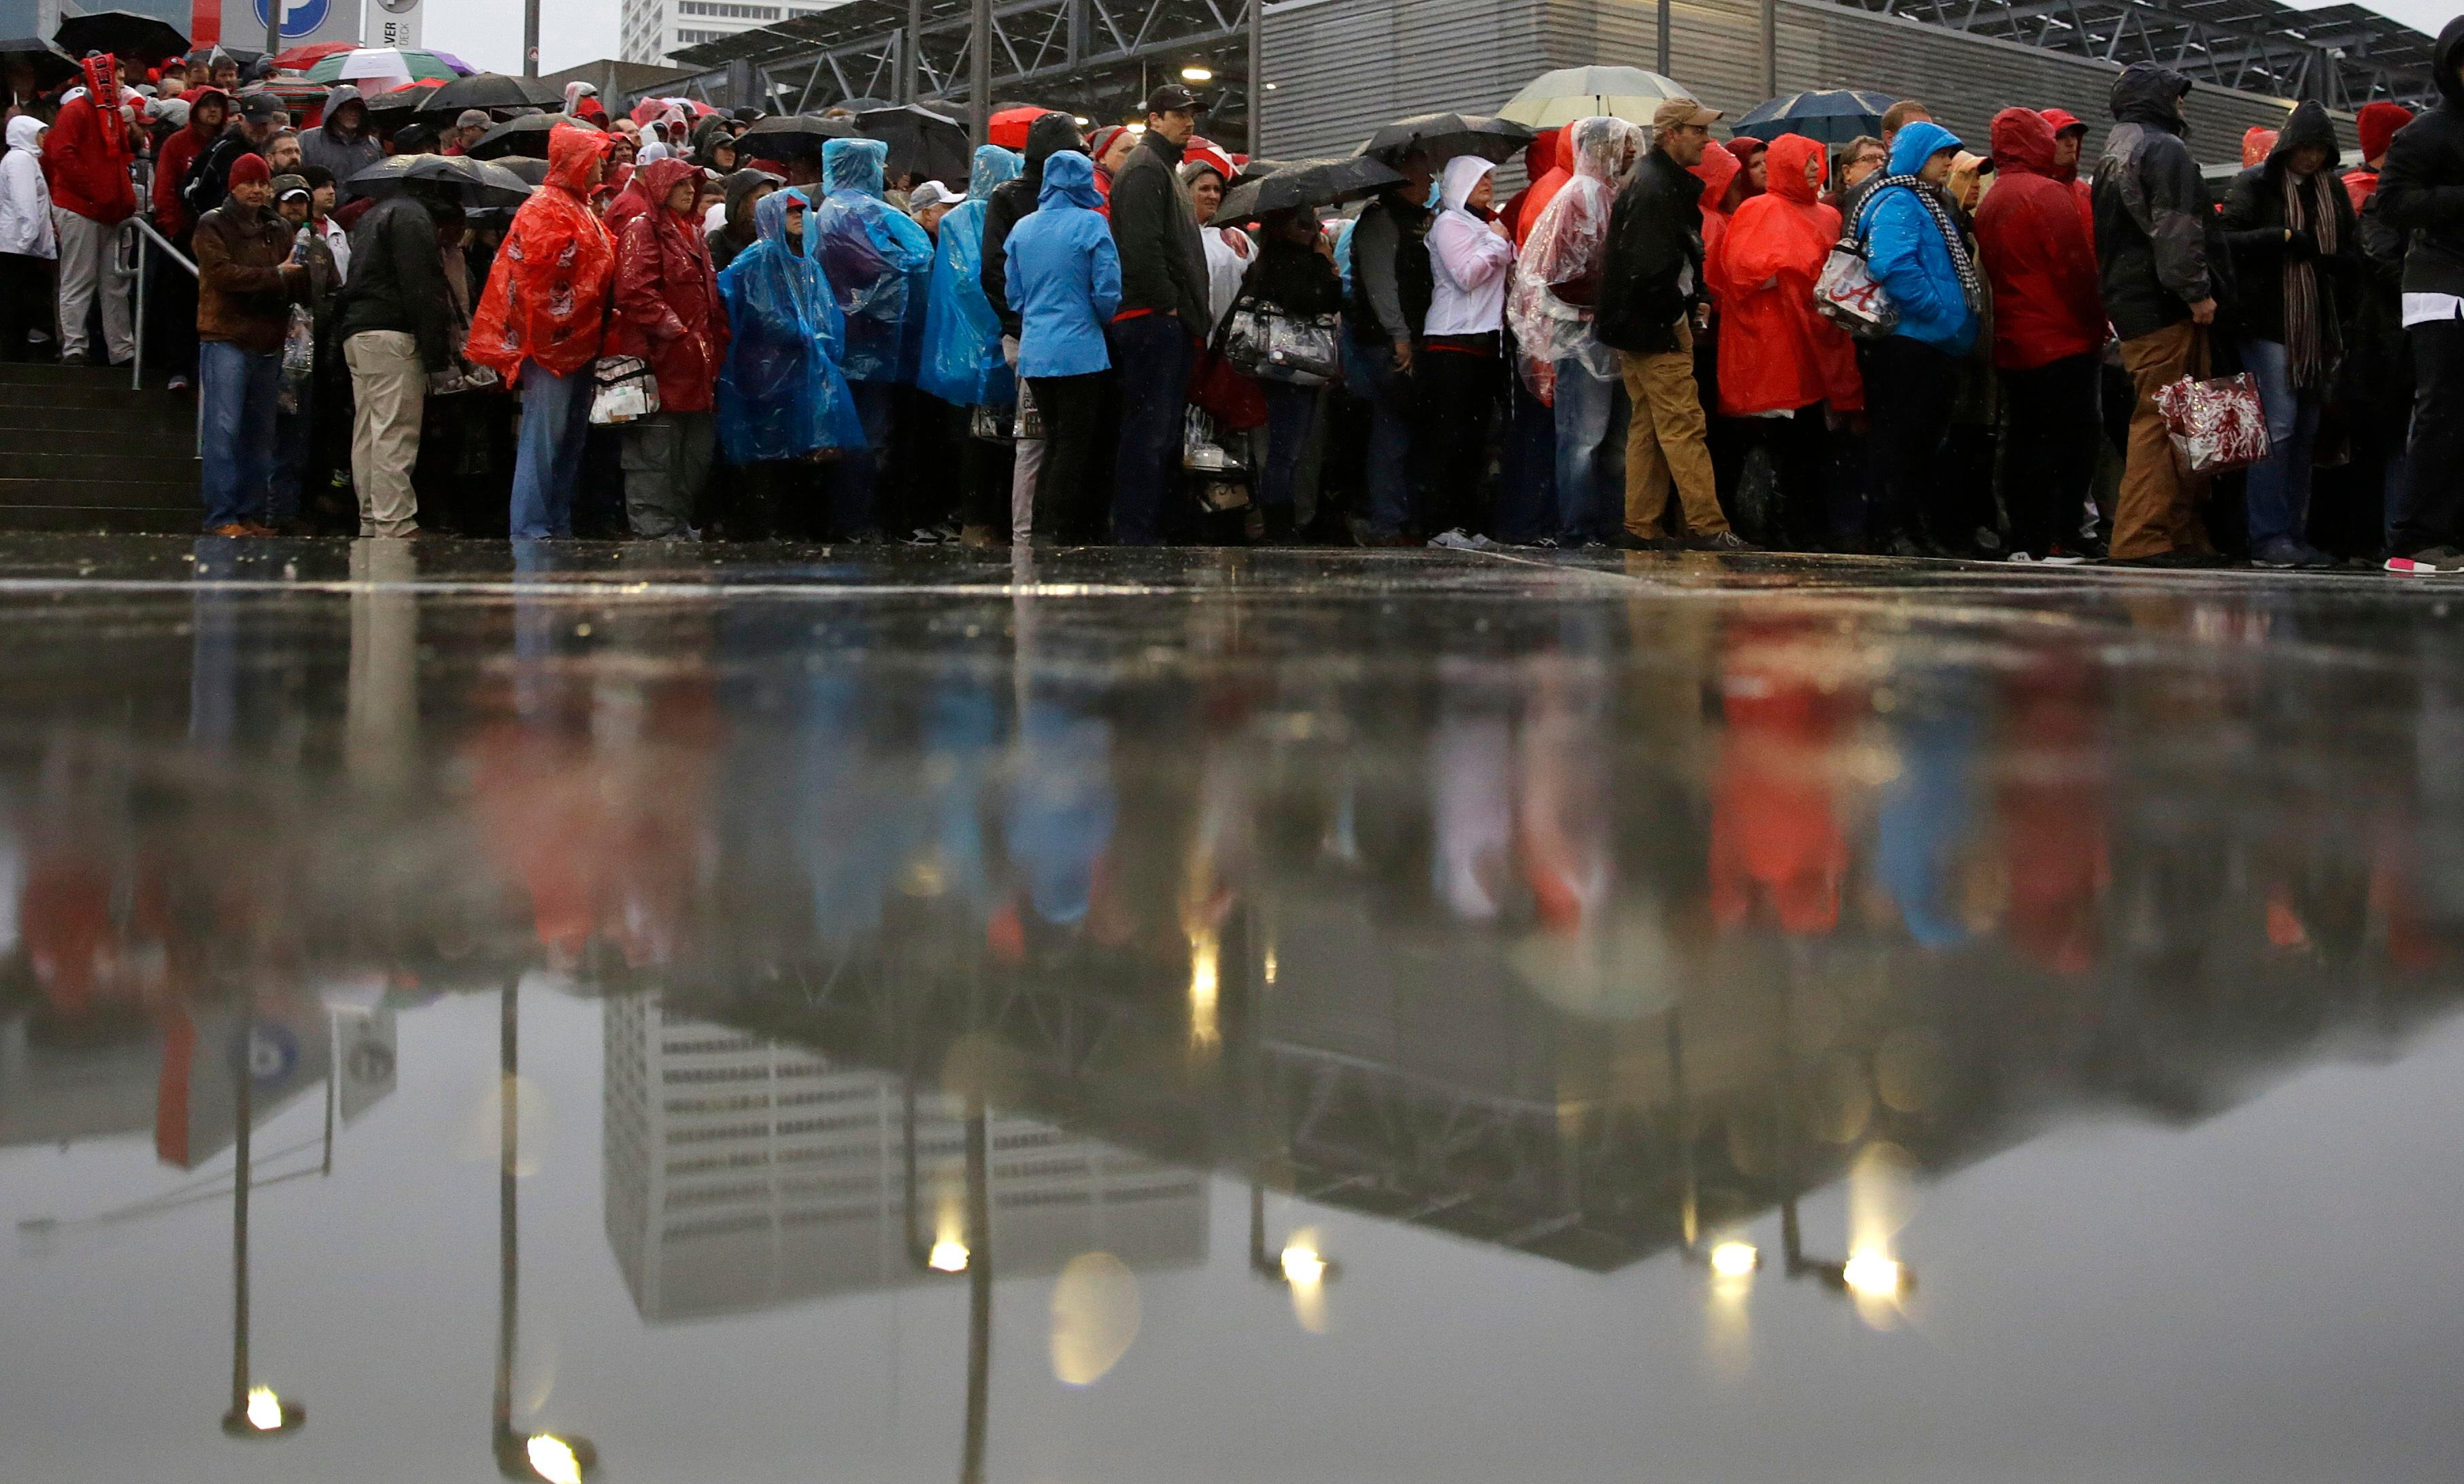 Fans wait outside Mercedes-Benz Stadium before the NCAA college football playoff championship game between Georgia and Alabama Monday, Jan. 8, 2018, in Atlanta. (AP Photo/David Goldman)